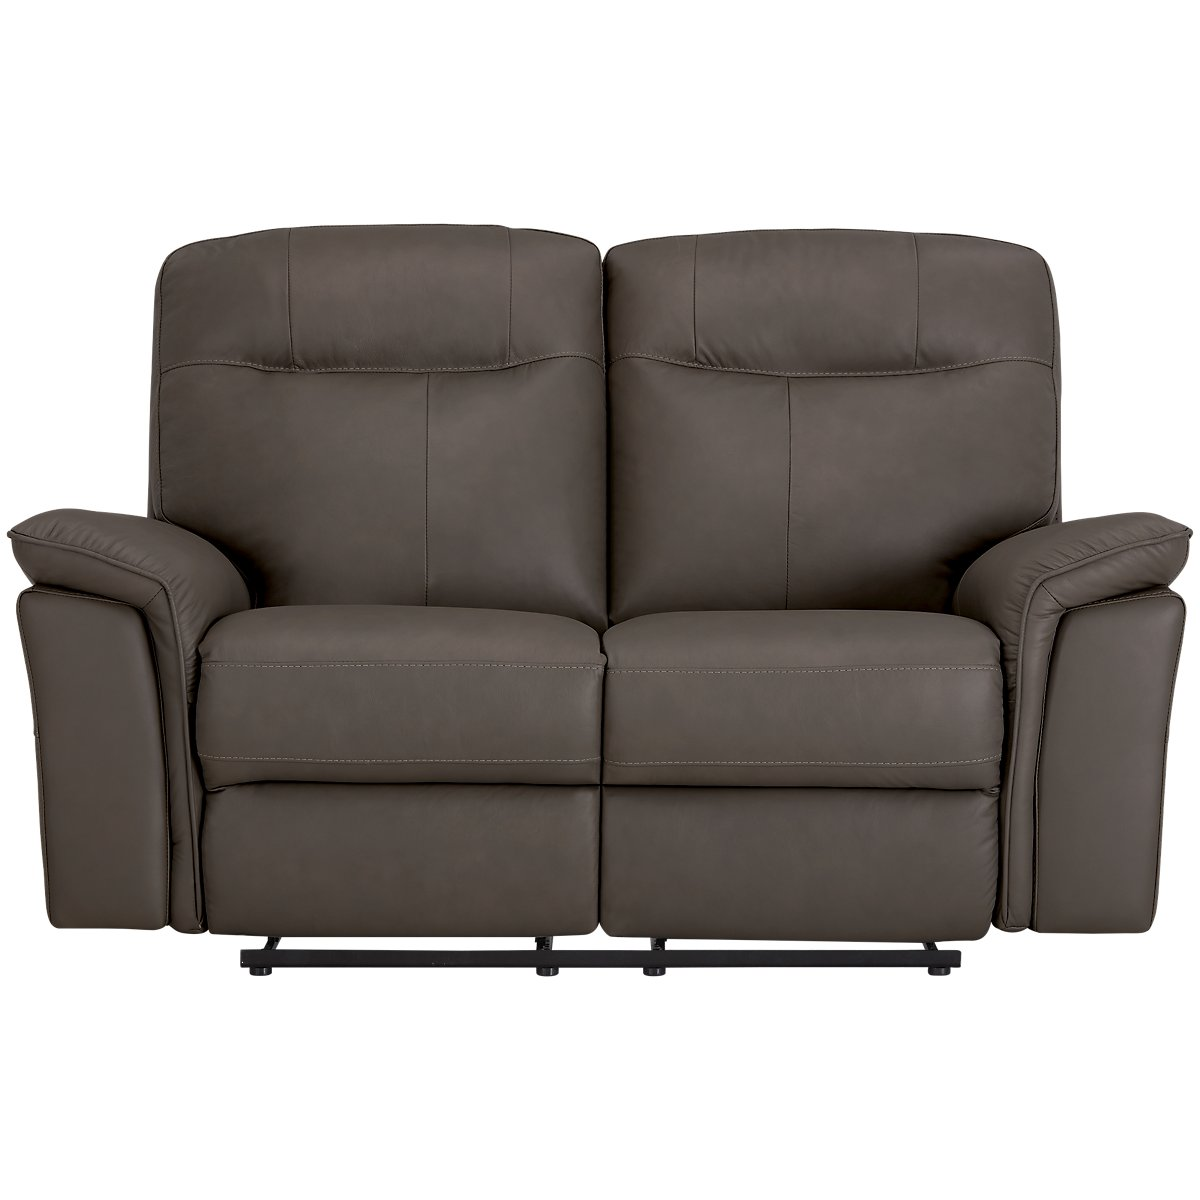 Mason Dark Brown Leather & Vinyl Reclining Loveseat